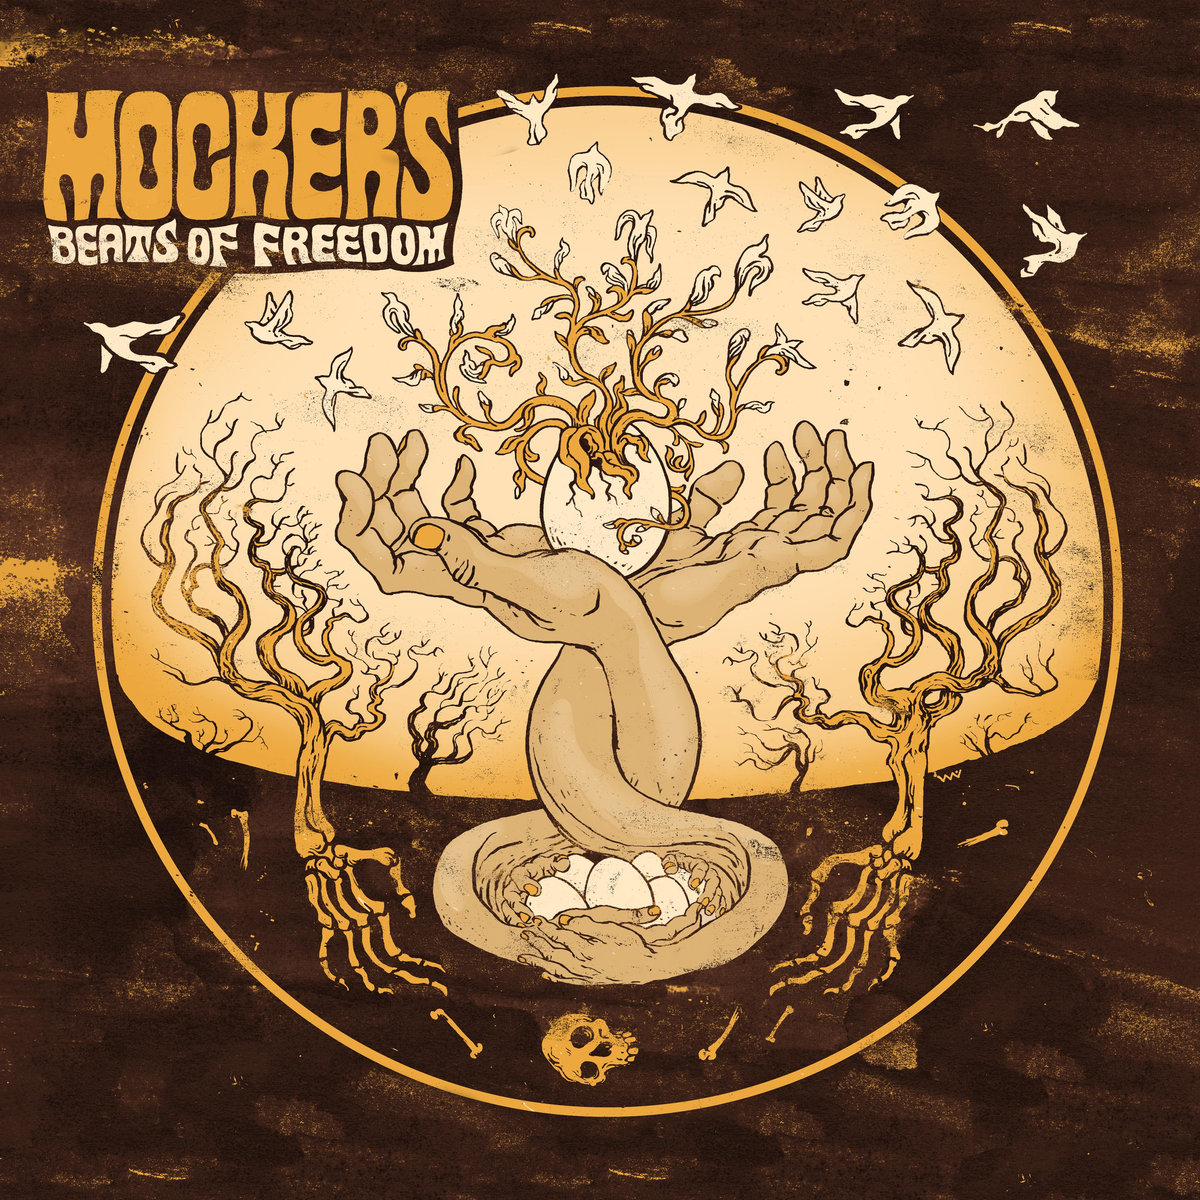 Mocker's - Beats of Freedom - LP - Sept 2017